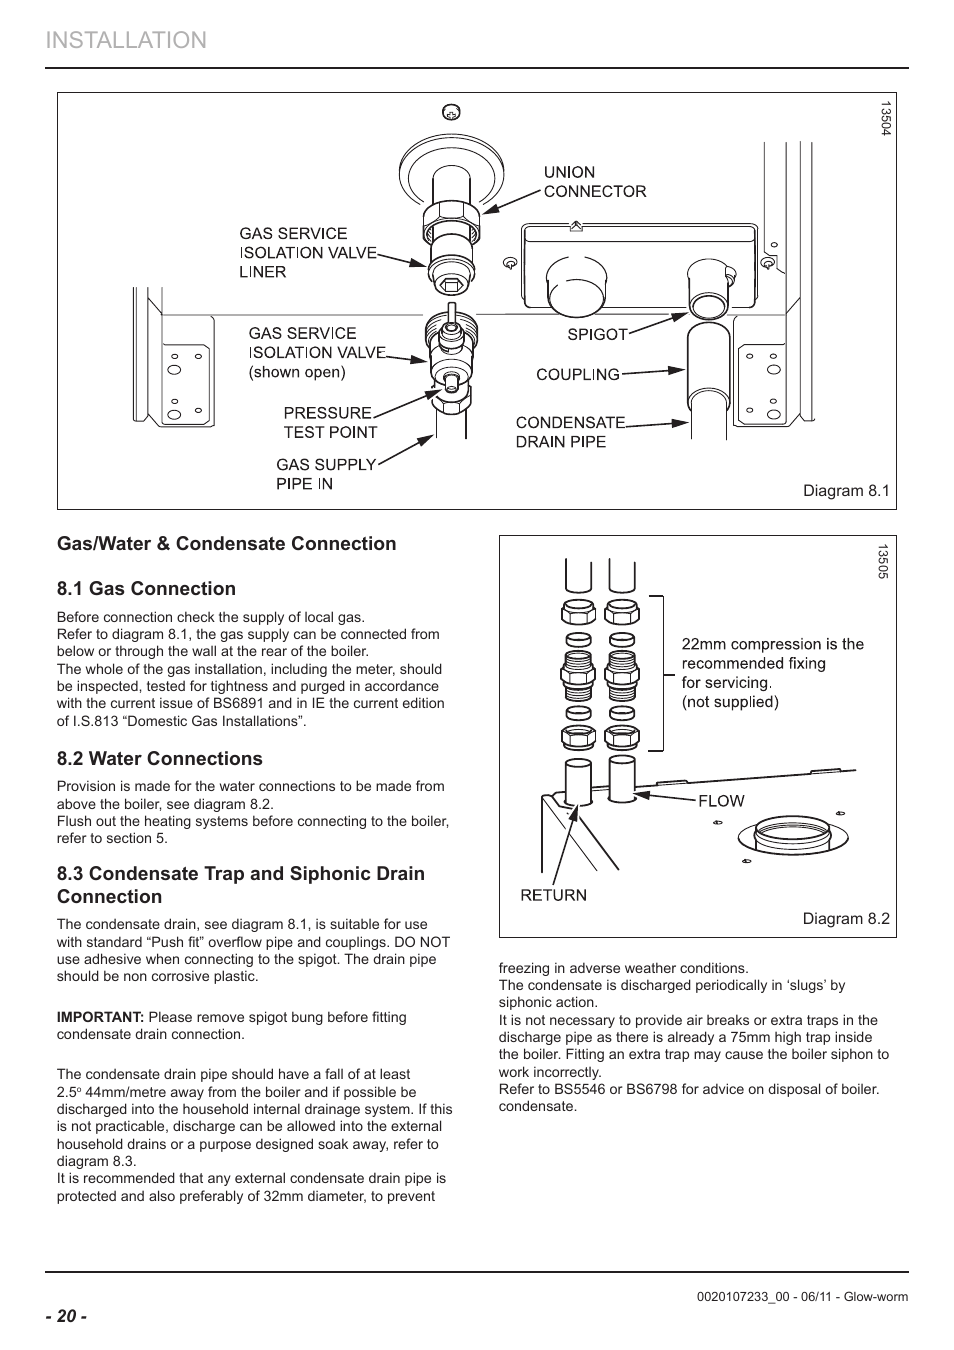 Luxury Glow Worm Boiler Manual Image Collection - Electrical Circuit ...